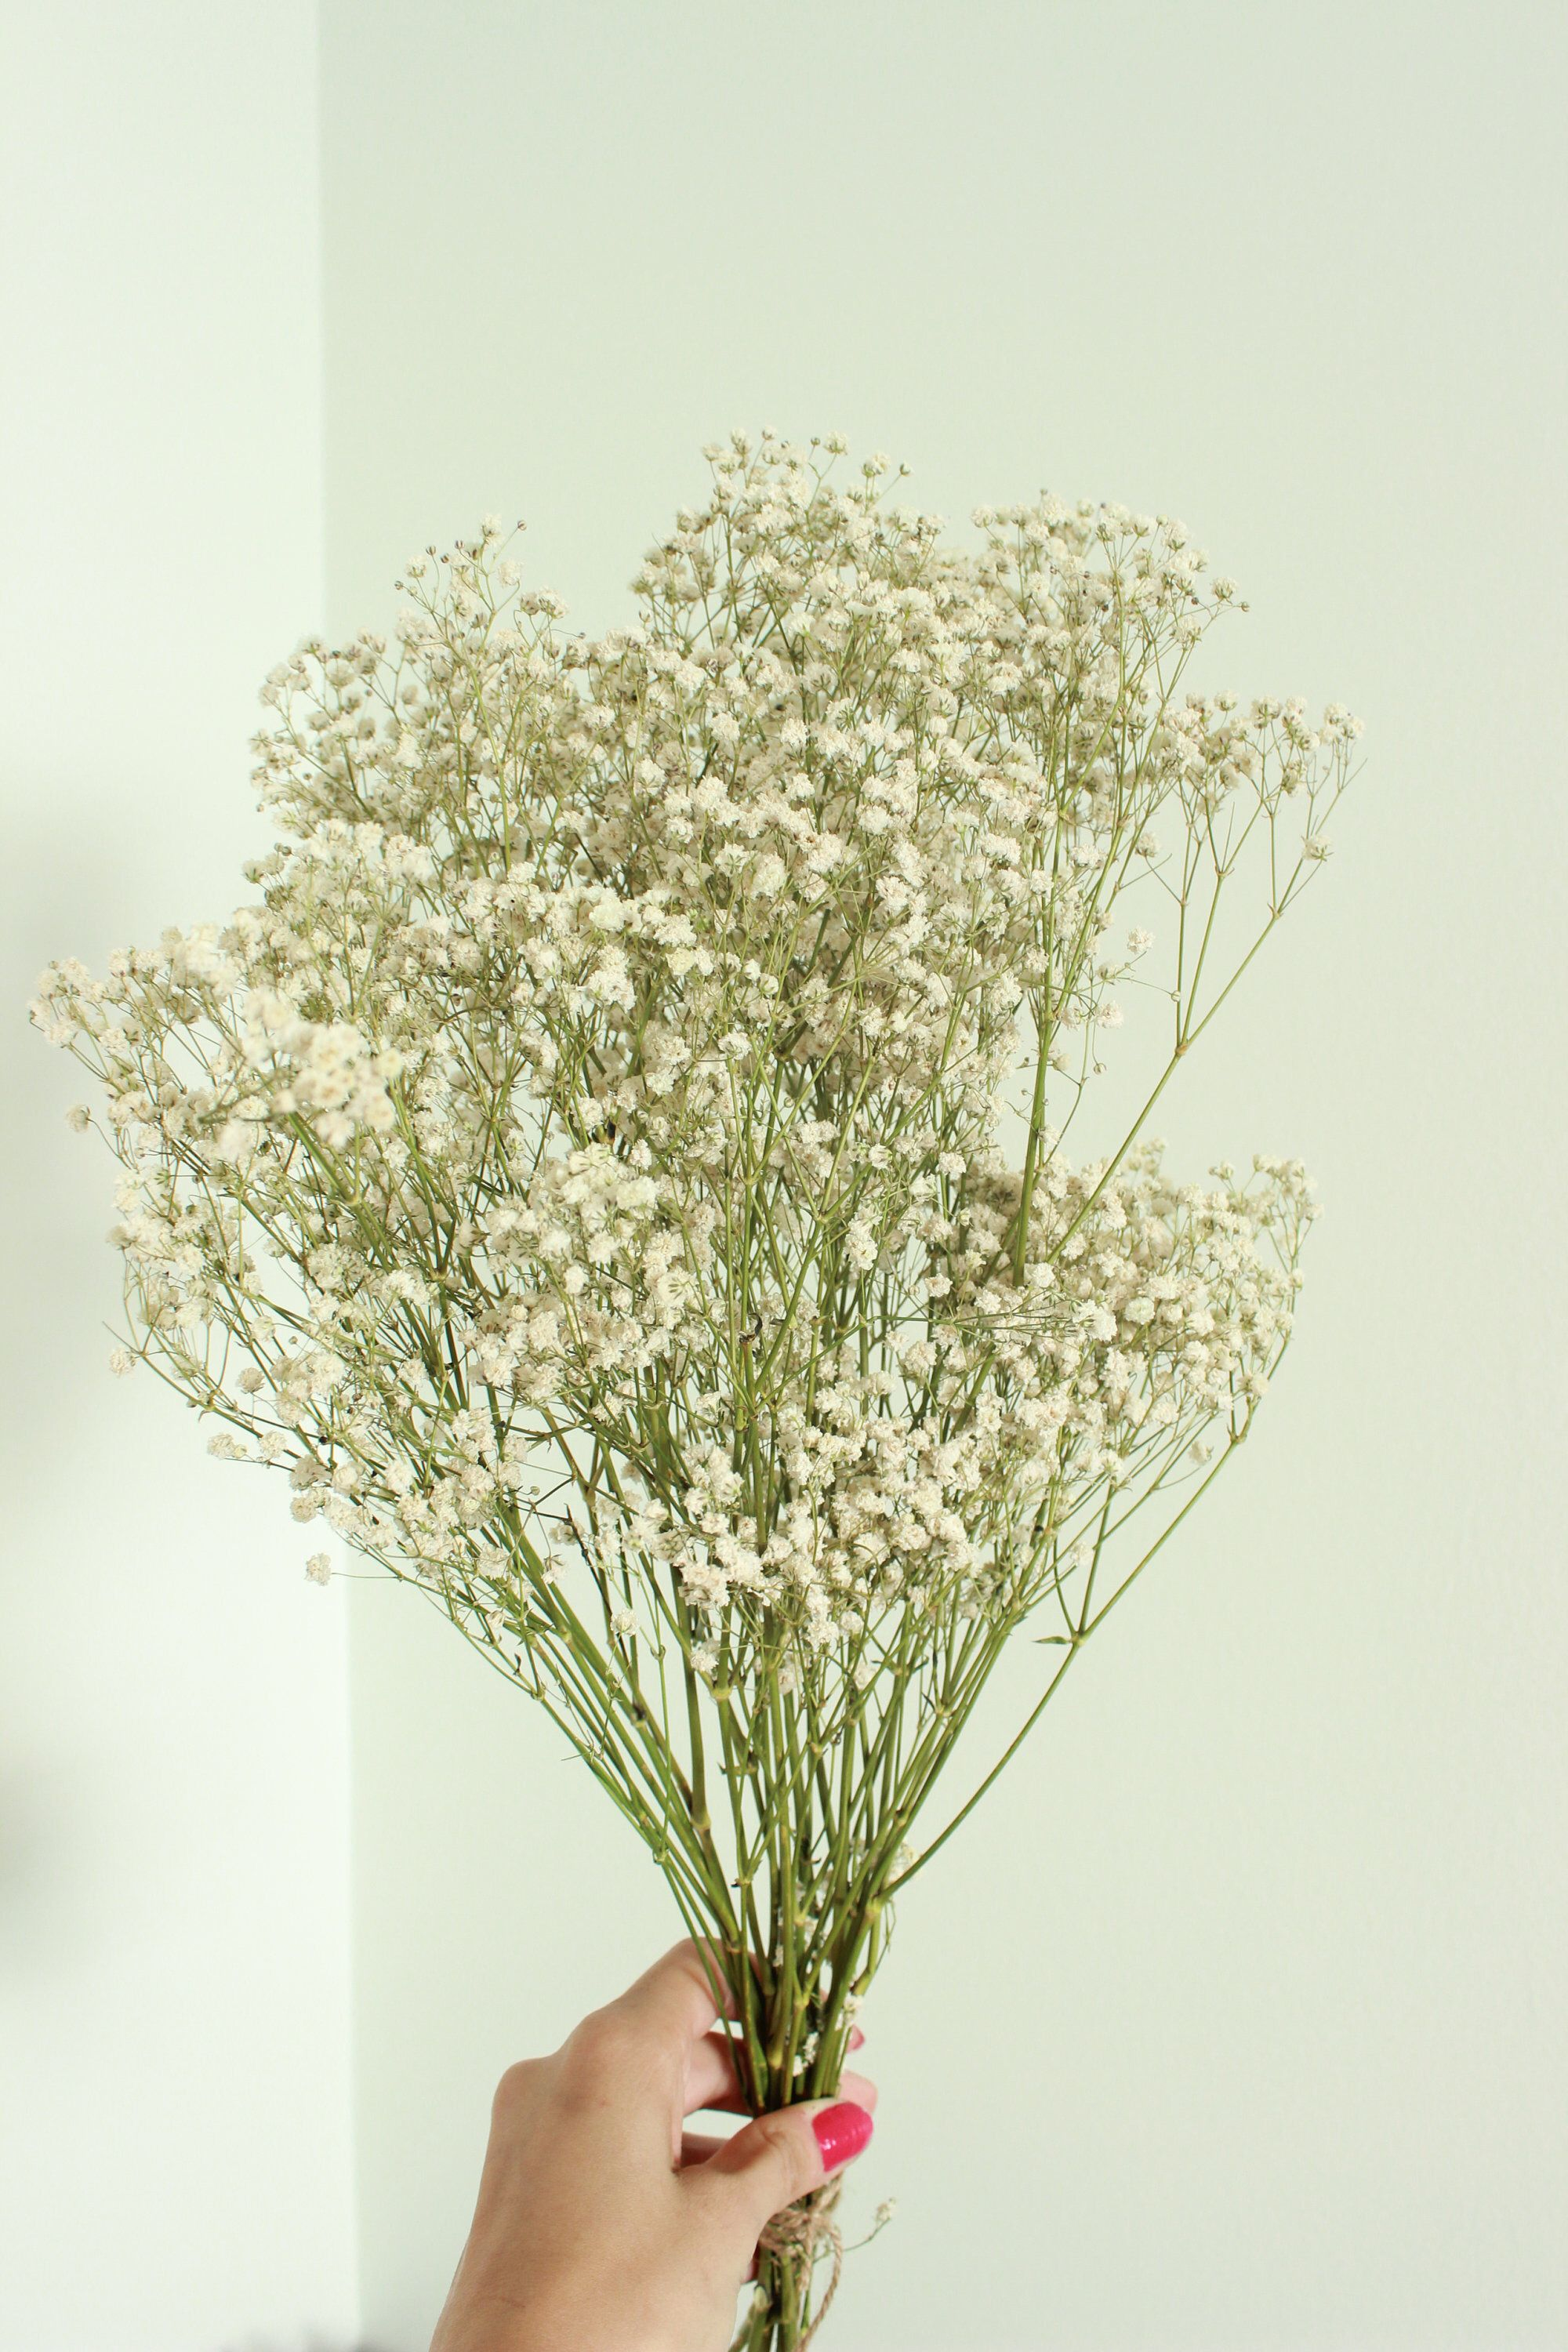 Dry Babies Breath Flowers 8 10 Branches Dried Flowers For Etsy Dried Flowers How To Preserve Flowers Dried Baby S Breath